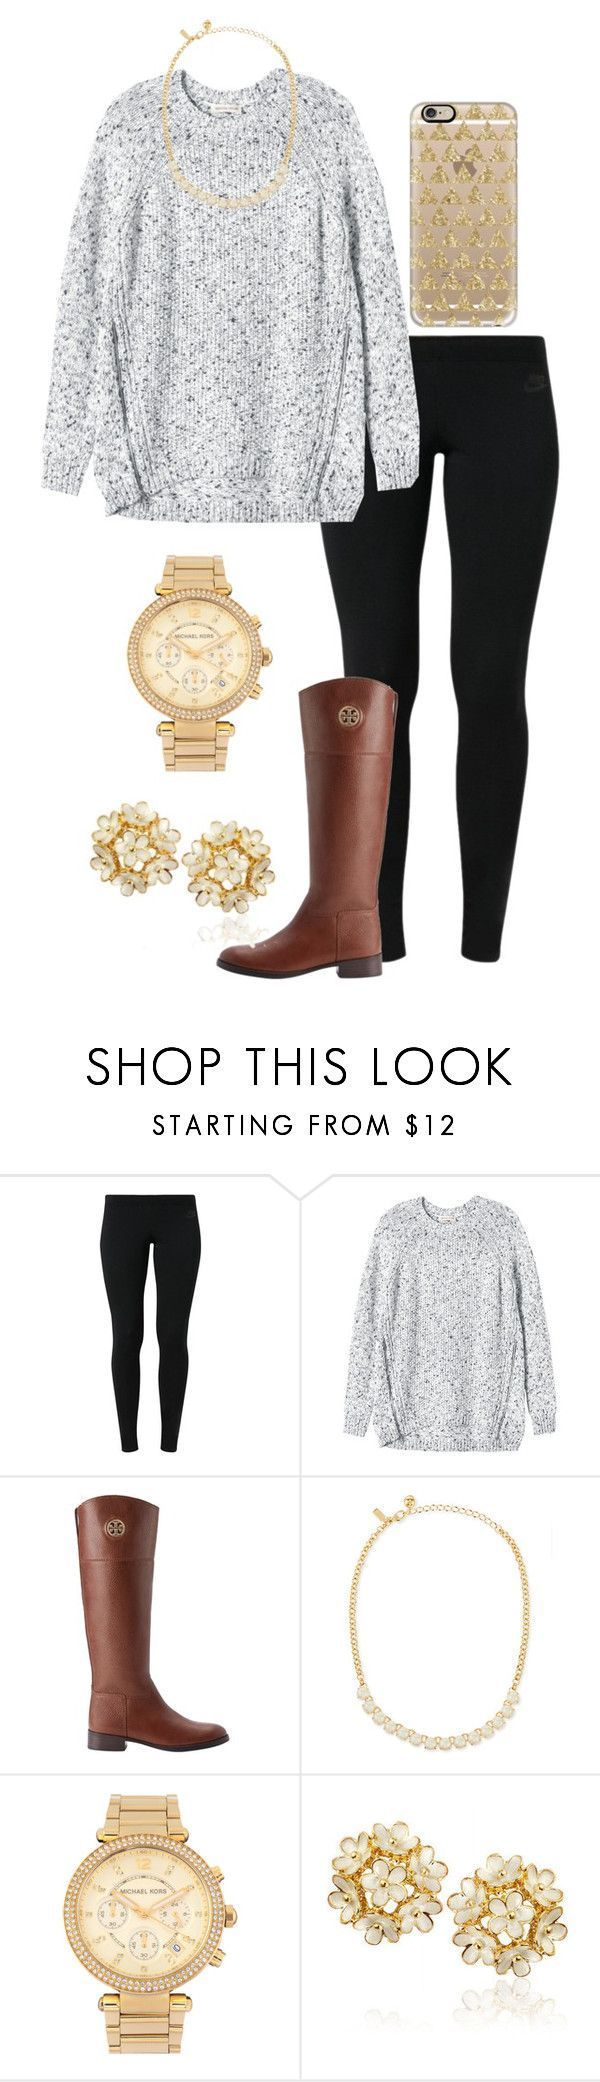 """Oh what a day is today! "" by madelyn-abigail �� liked on Polyvore featuring NIKE, Rebecca Taylor, Tory Burch, Kate Spade, Michael Kors and Casetify"